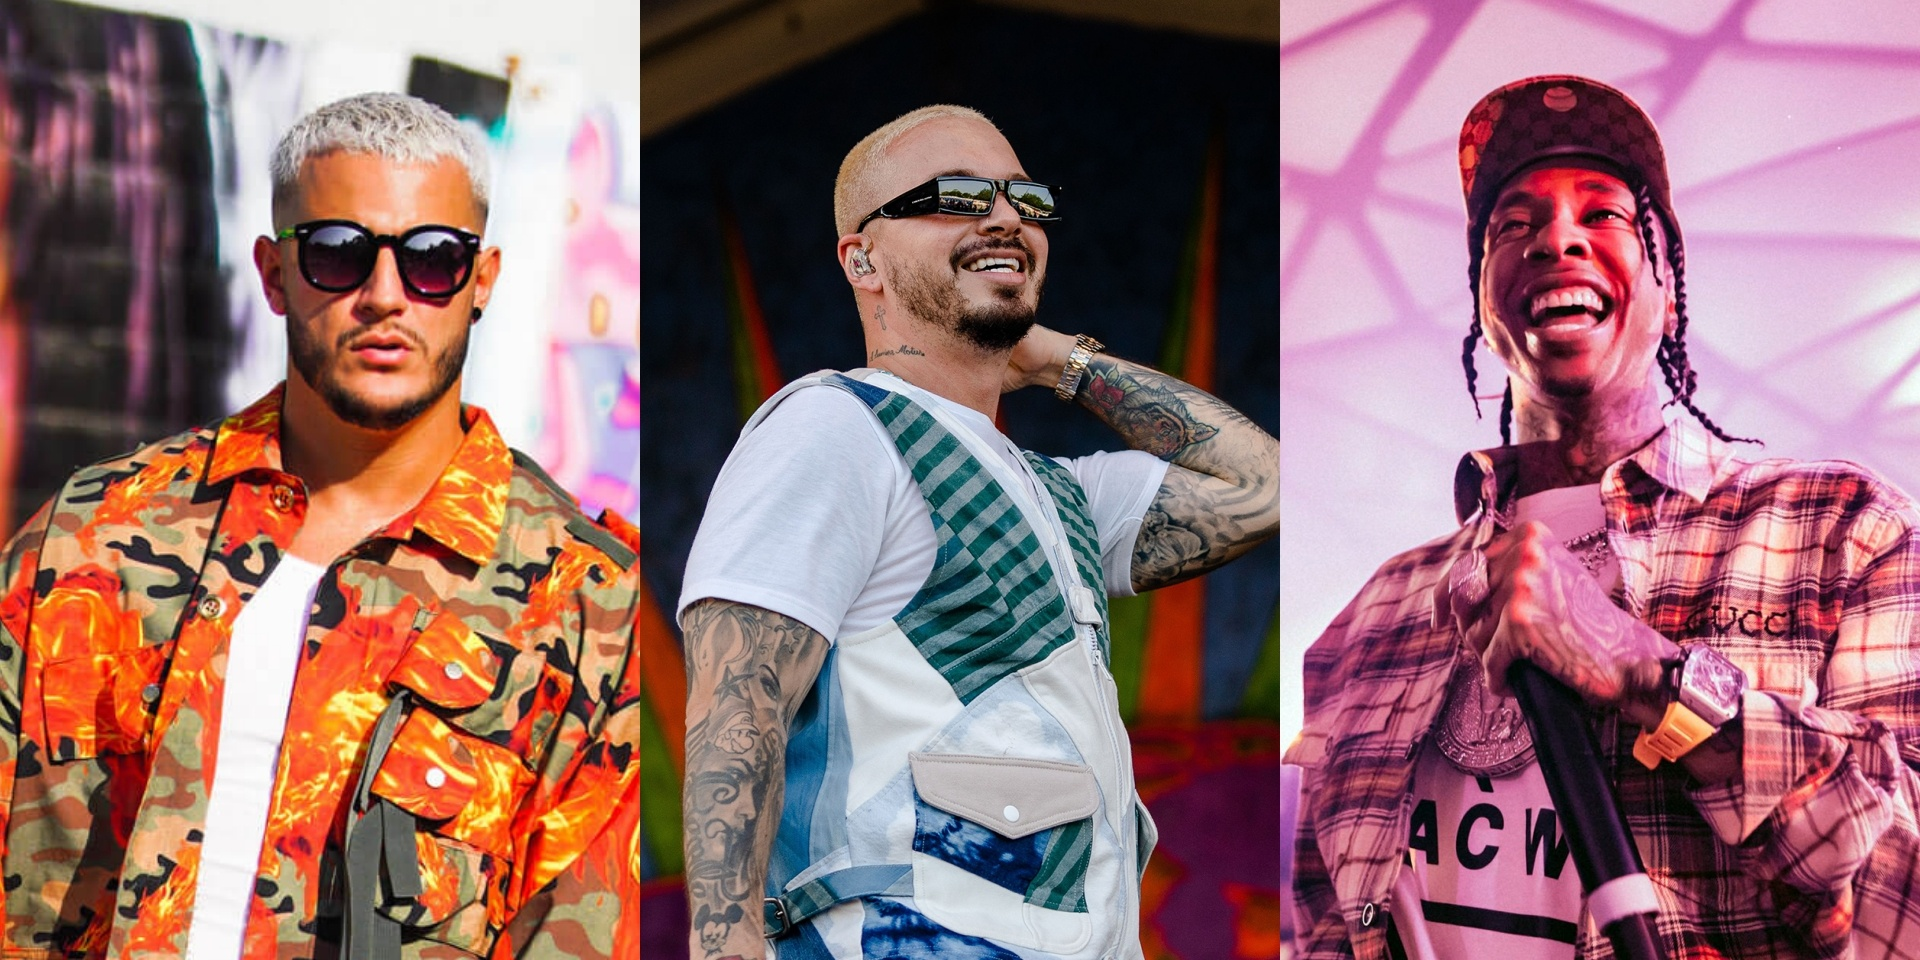 DJ Snake, J. Balvin, Tyga share surreal music video for 'Loco Contigo' – watch